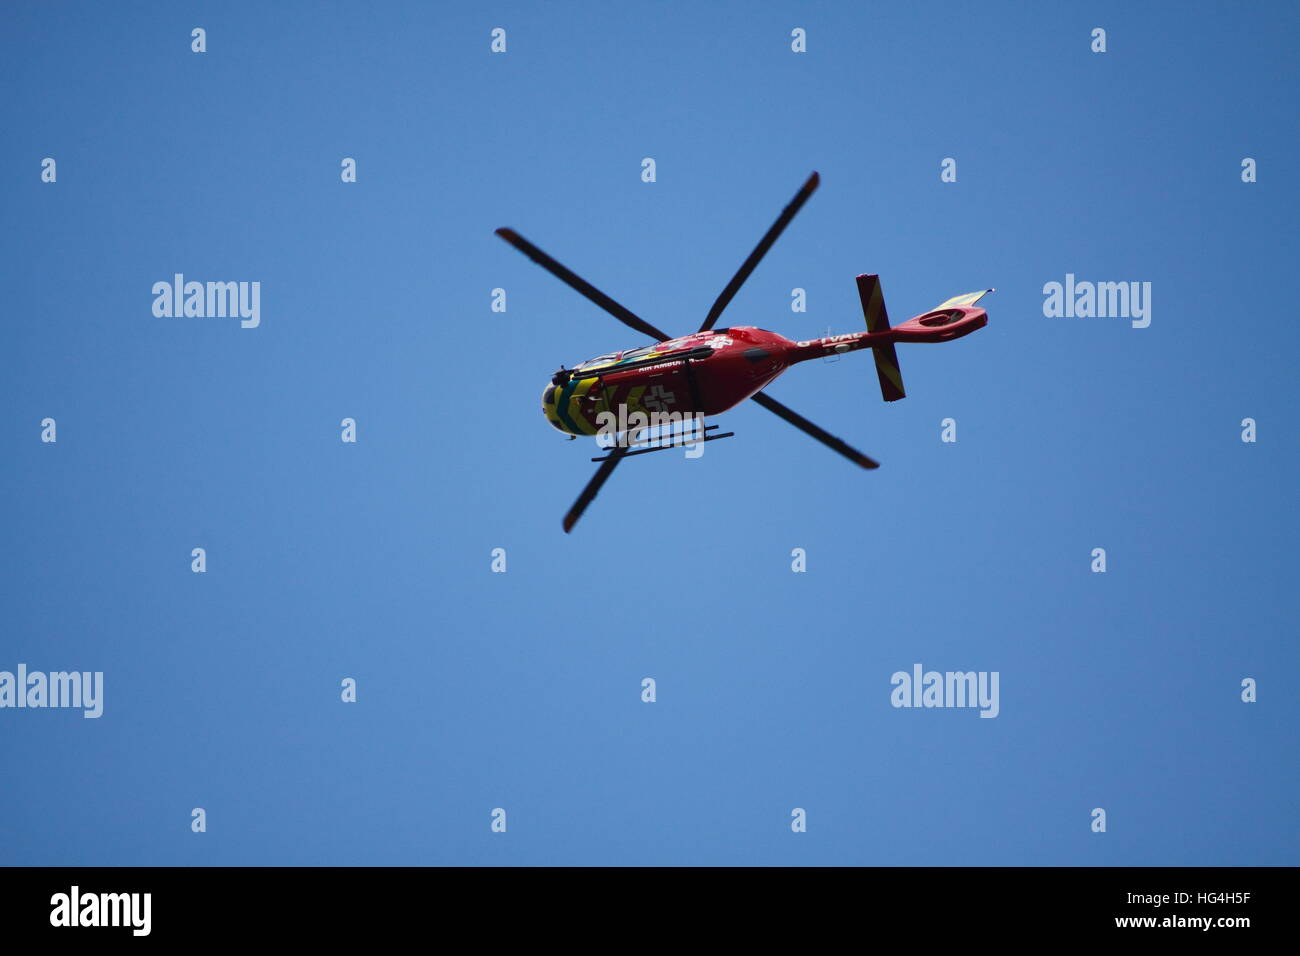 Air Ambulance Helicopter - Stock Image